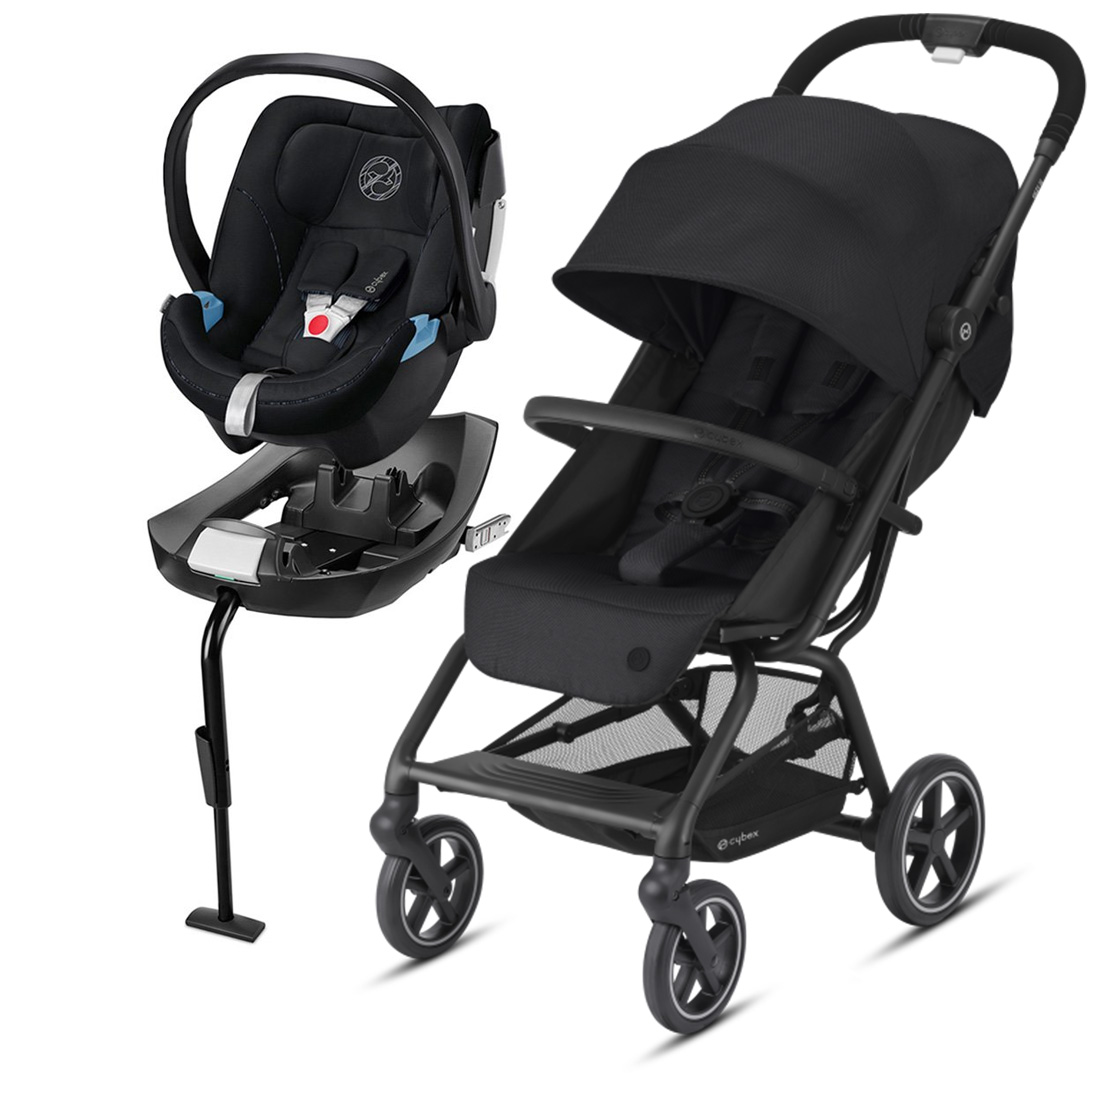 Coche Travel System Eezy S Plus v2 NG + Aton5 + Base